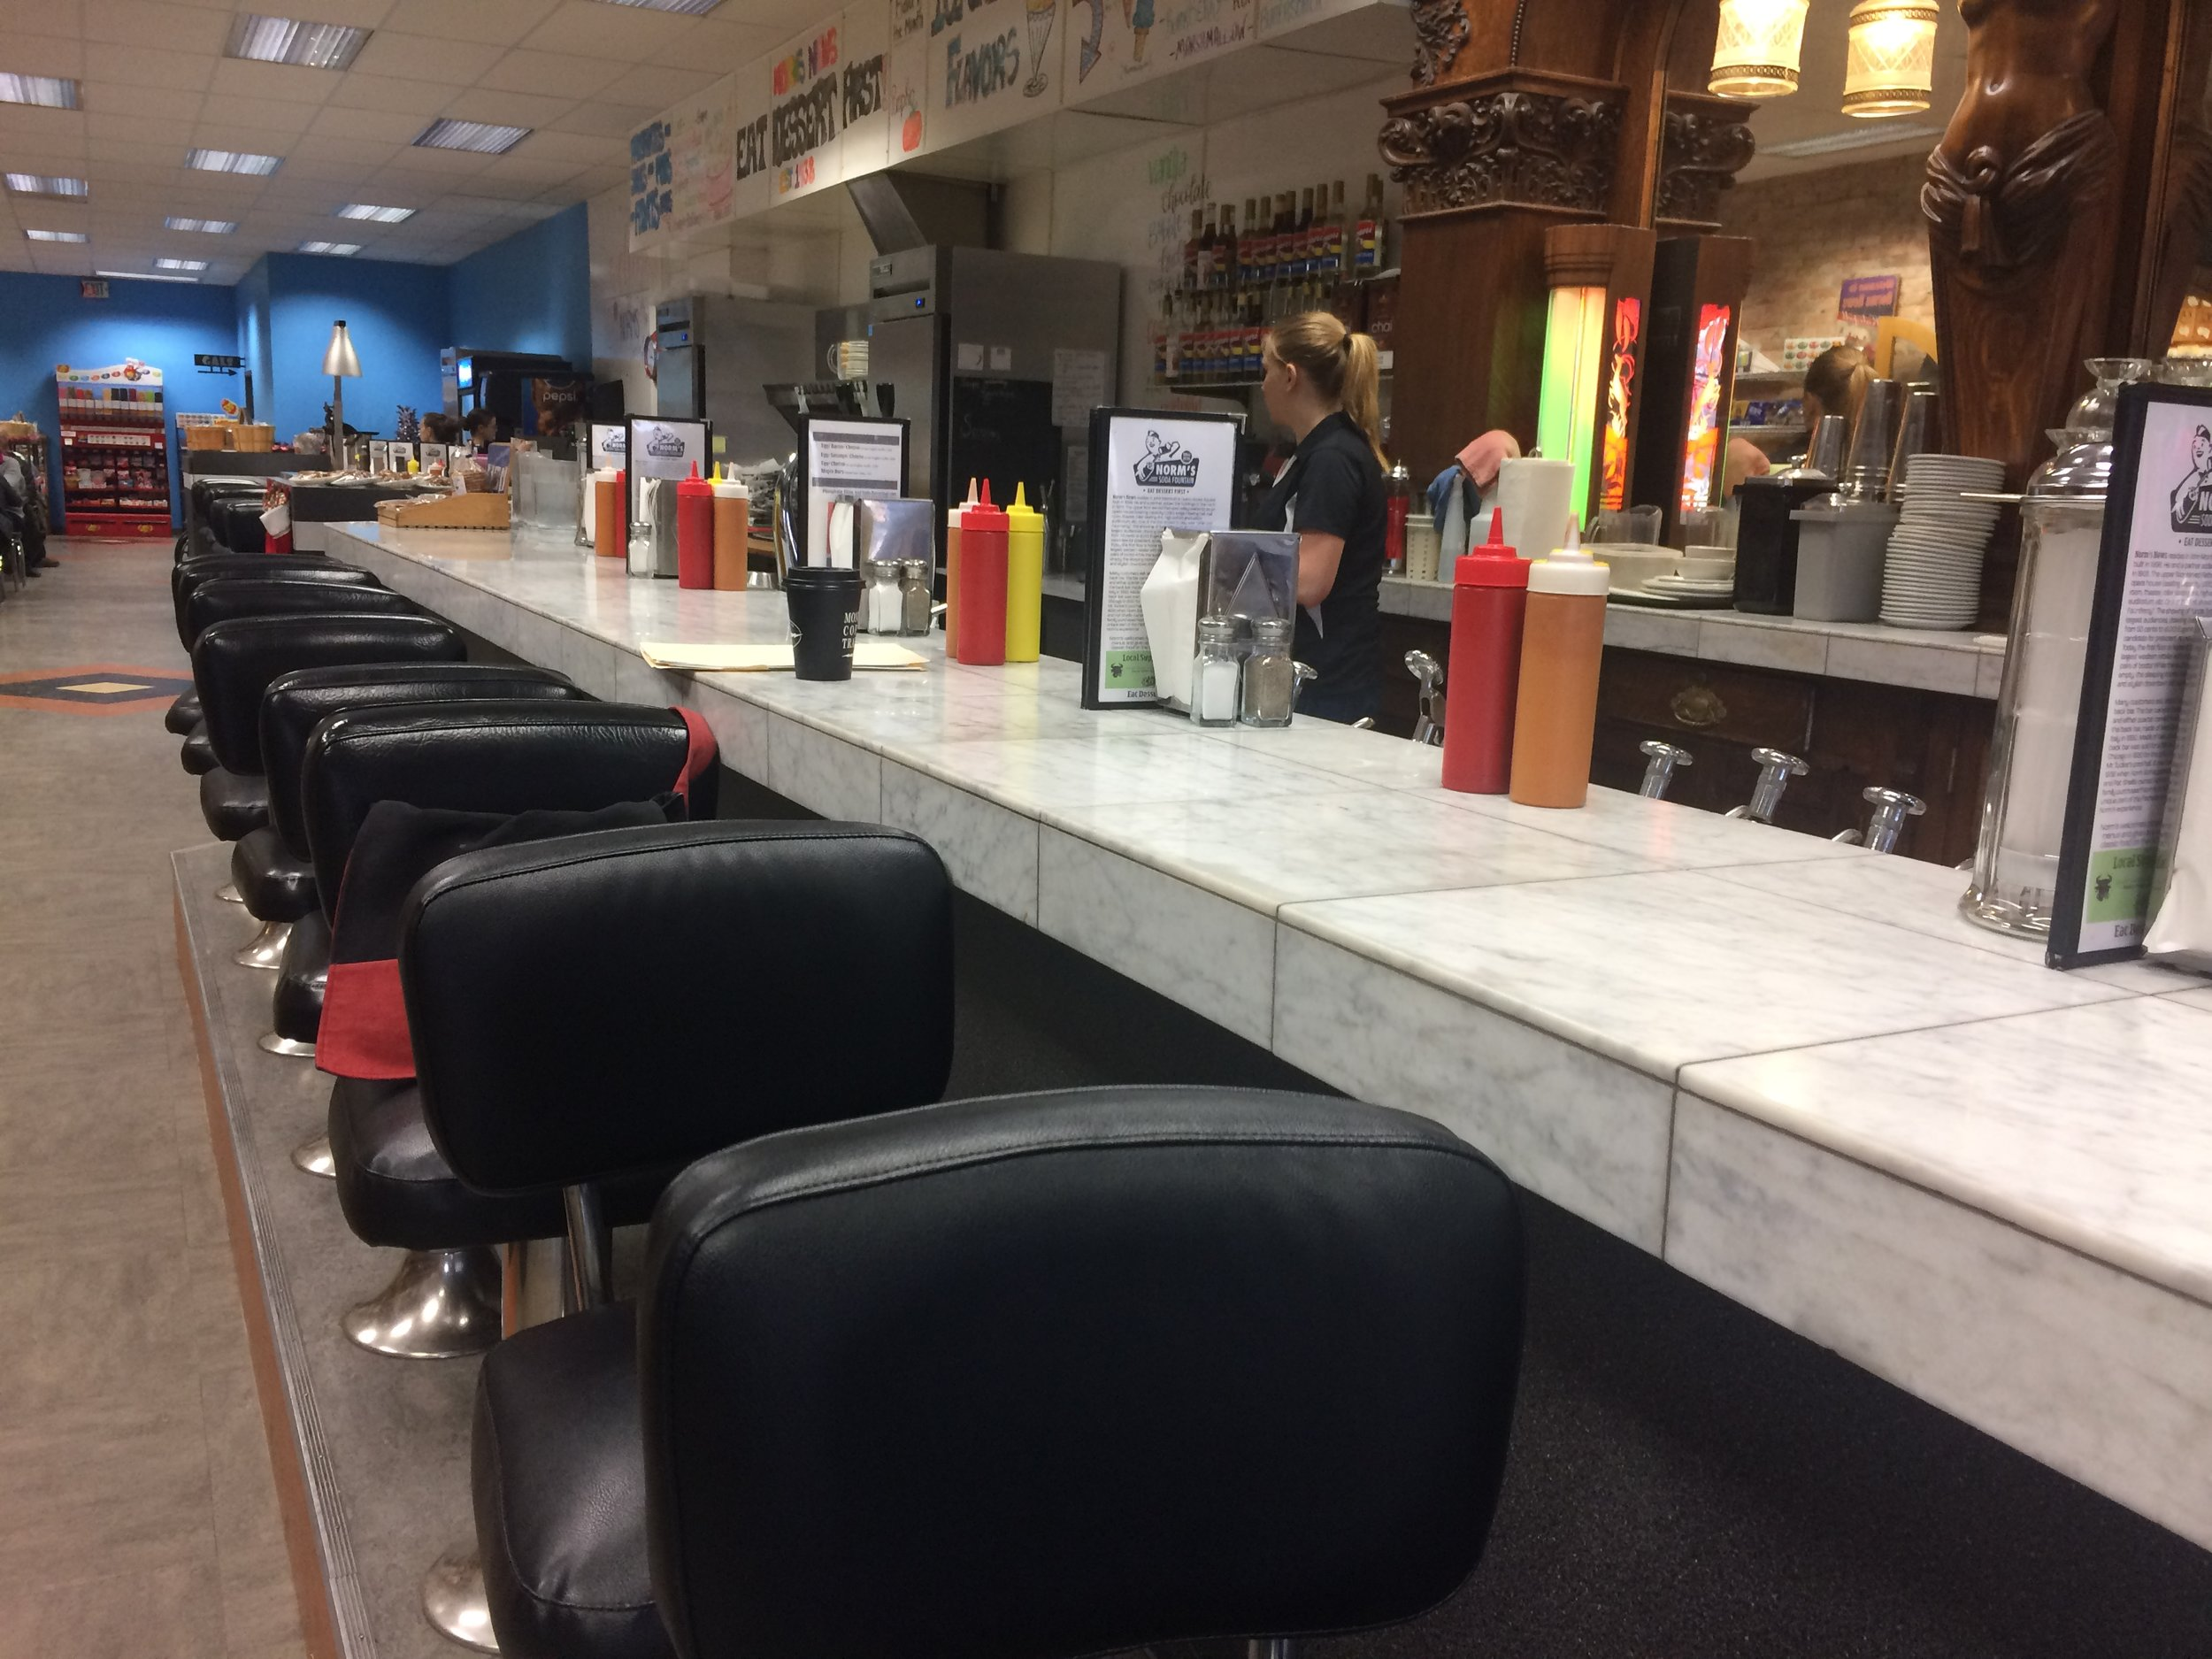 """The soda fountain at the McIntosh Opera opened in 1938 when Norm Schappeaker bought Mr. Tucker's Pool Hall. The beautiful oak and cypress """"Los Angeles"""" style Brunswick back bar had originally cost $369 in 1902. It was shipped to Kalispell in 1930 from Chicago at a cost of $3000."""